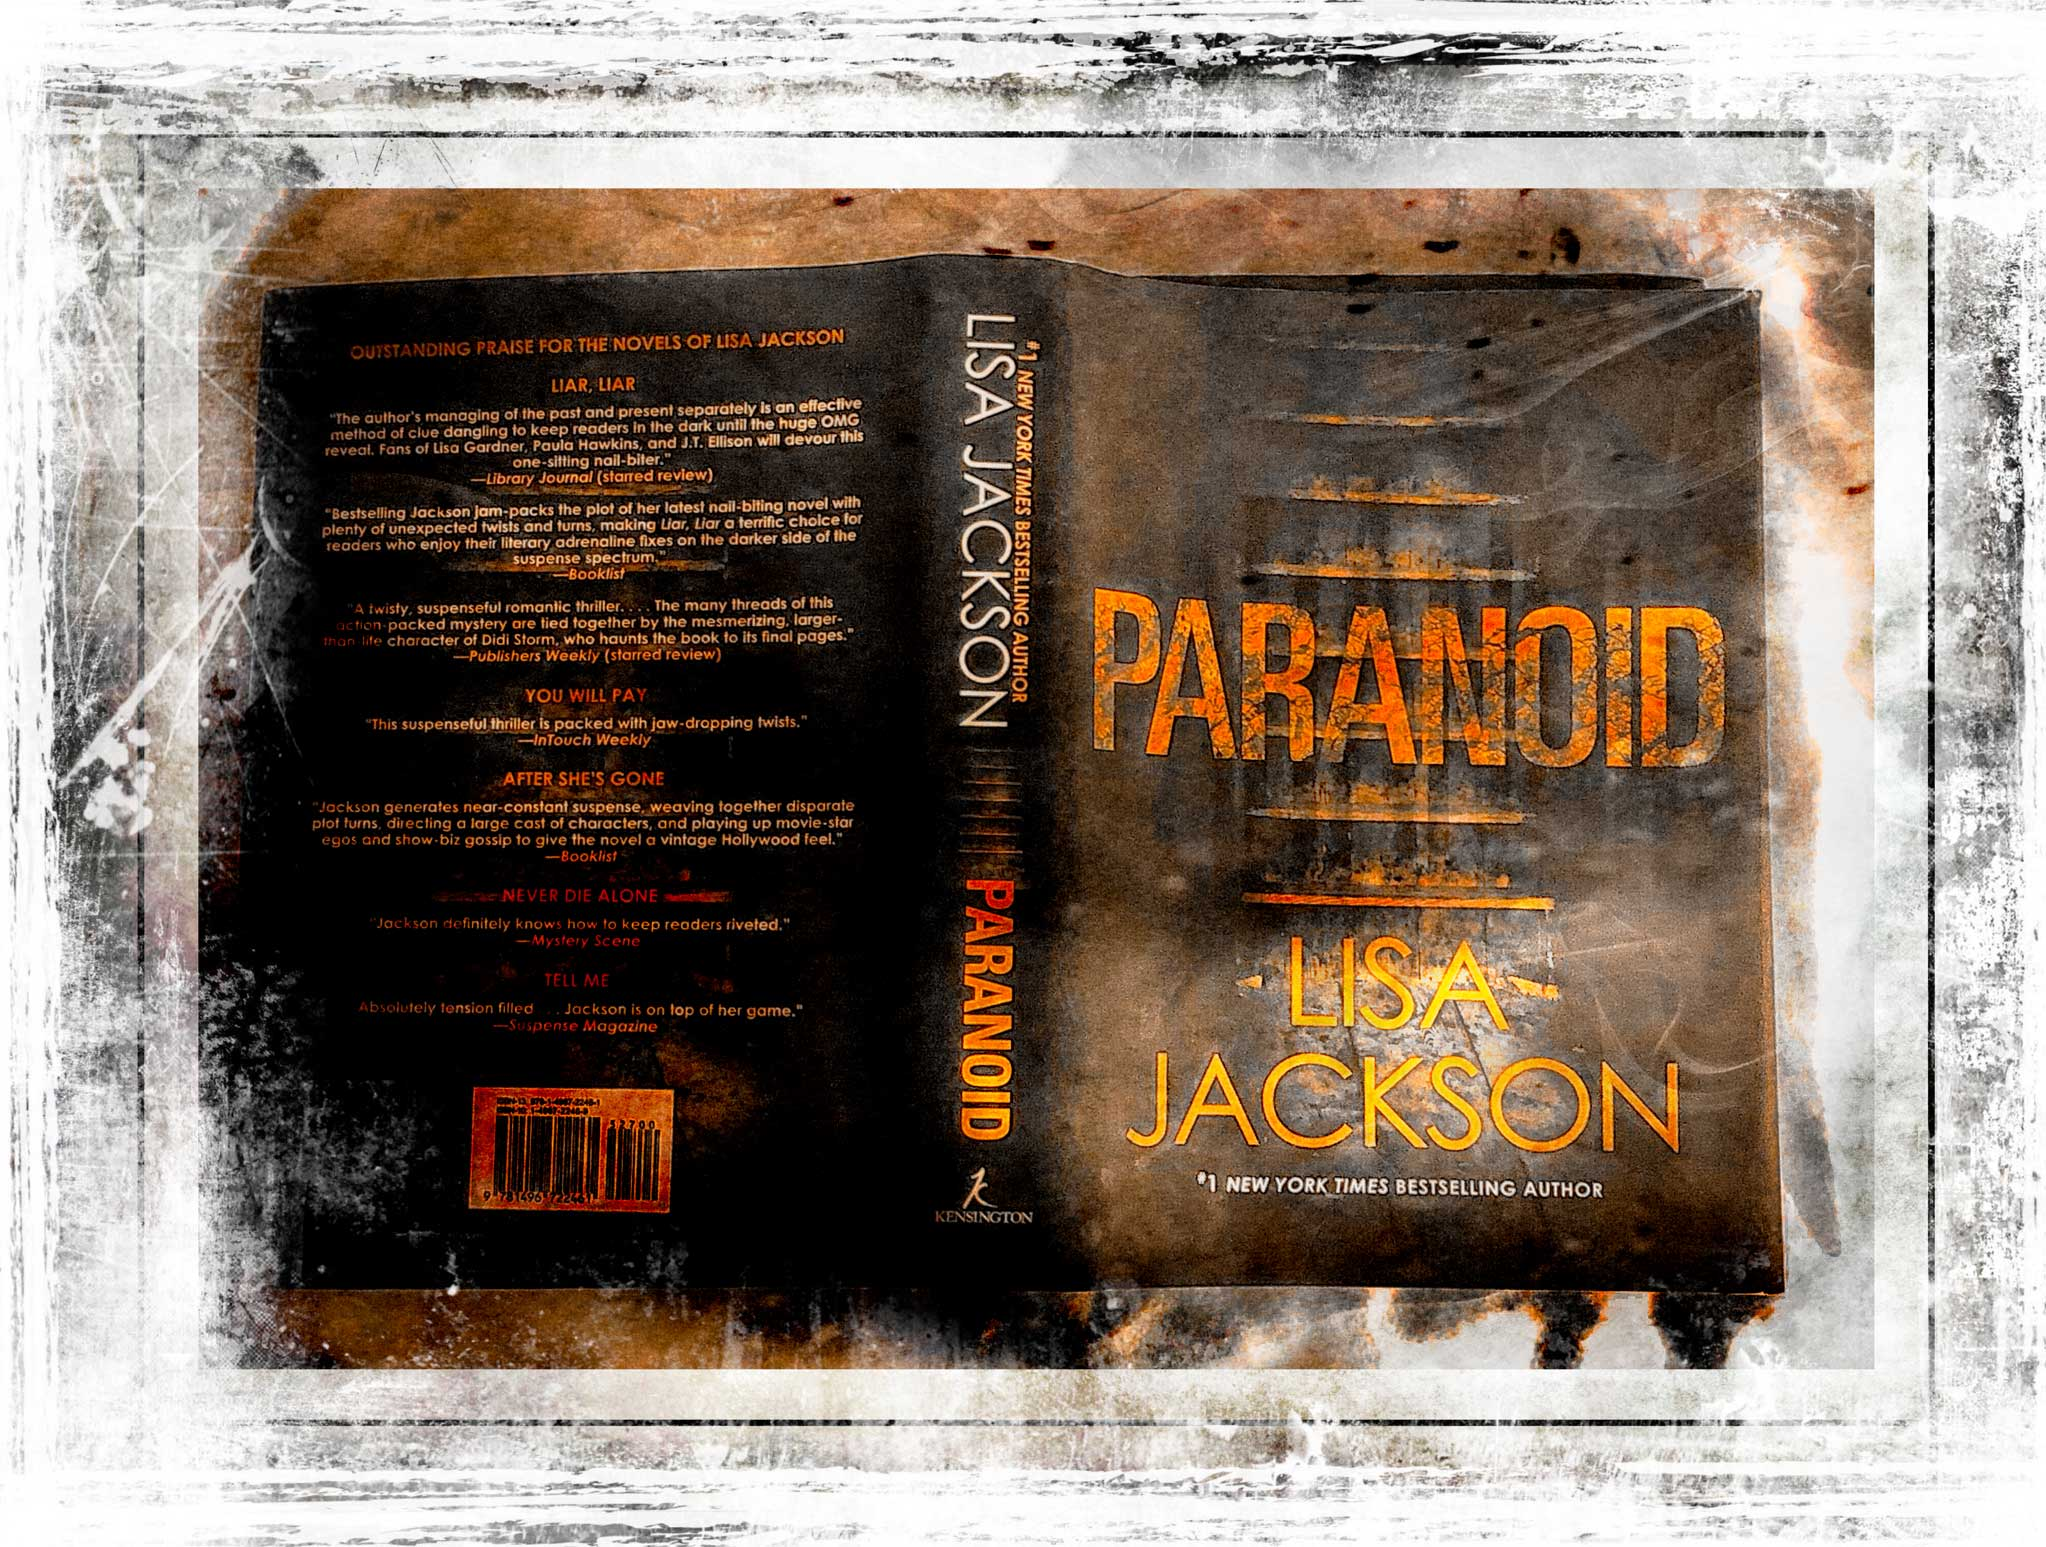 Paranoid Book by Lisa Jackson